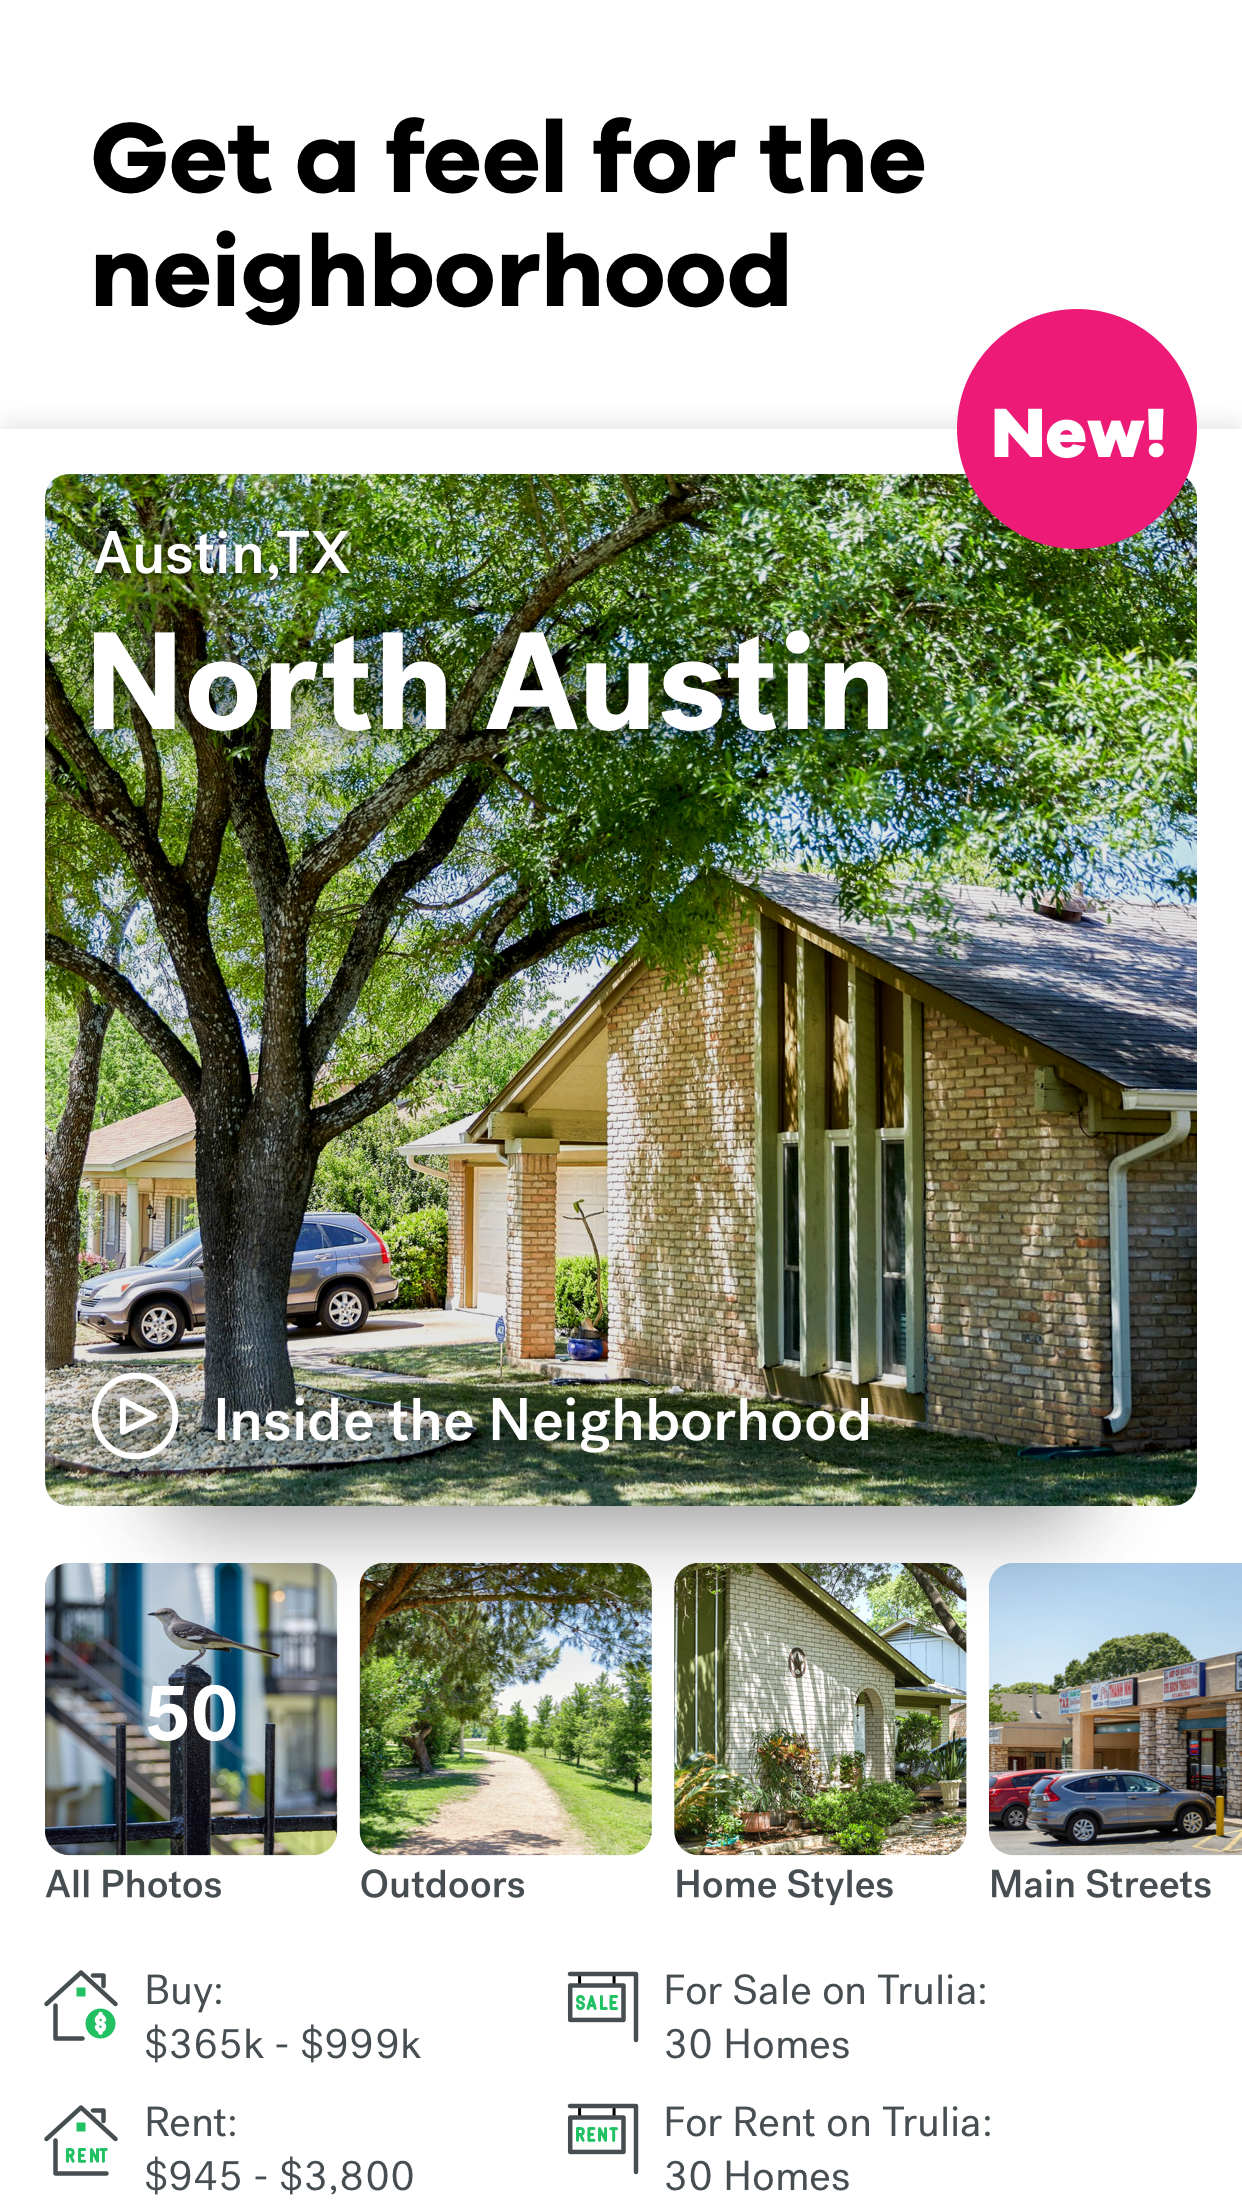 Trulia Real Estate: Find Homes Screenshot